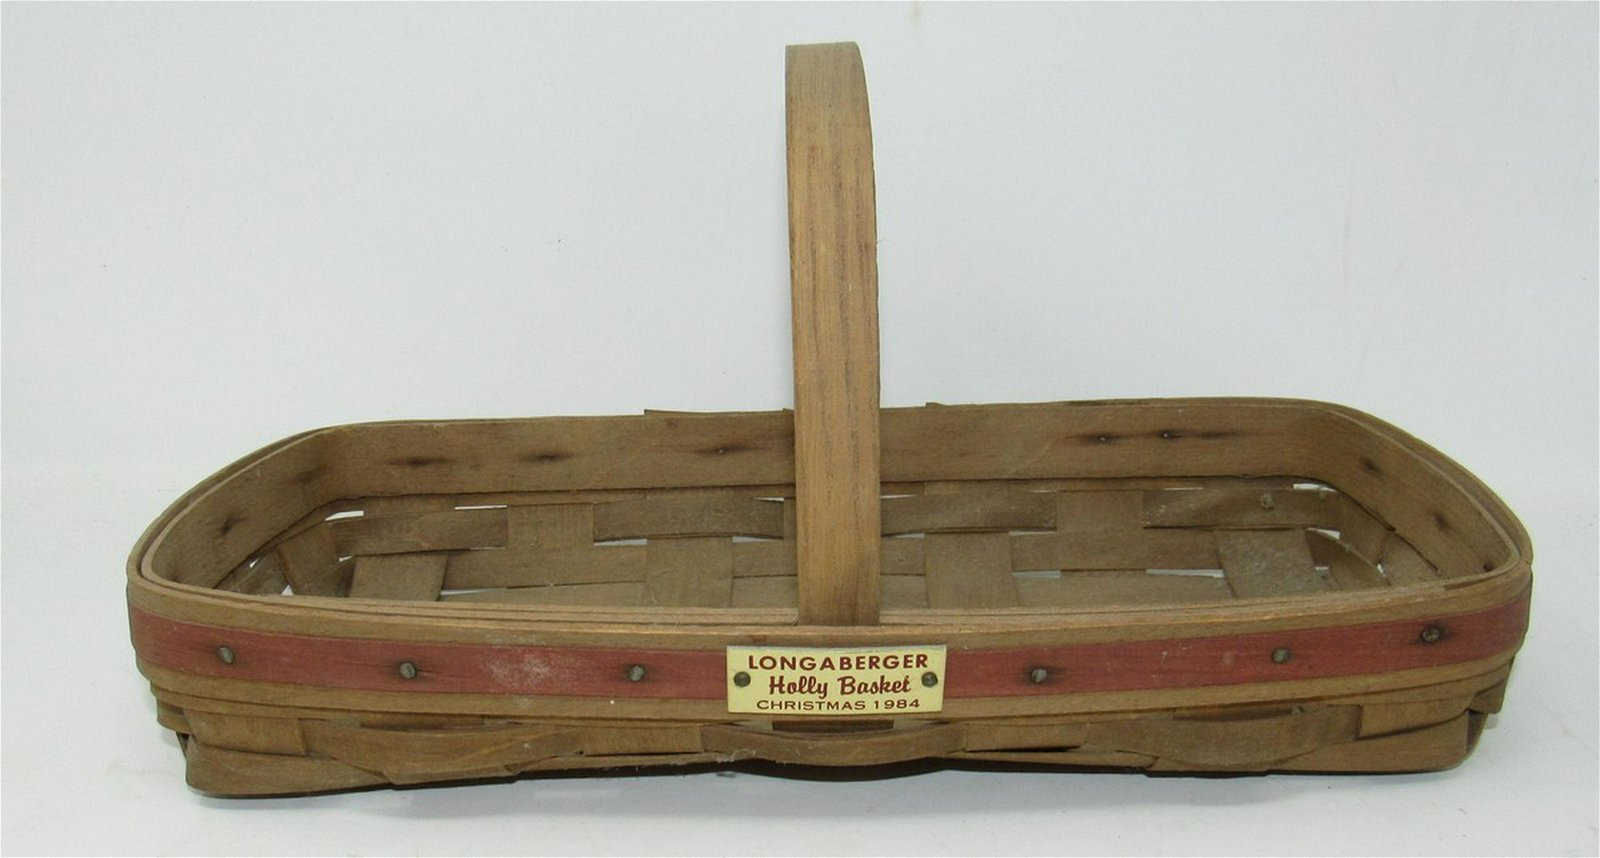 1984 Christmas Longaberger Holly Basket